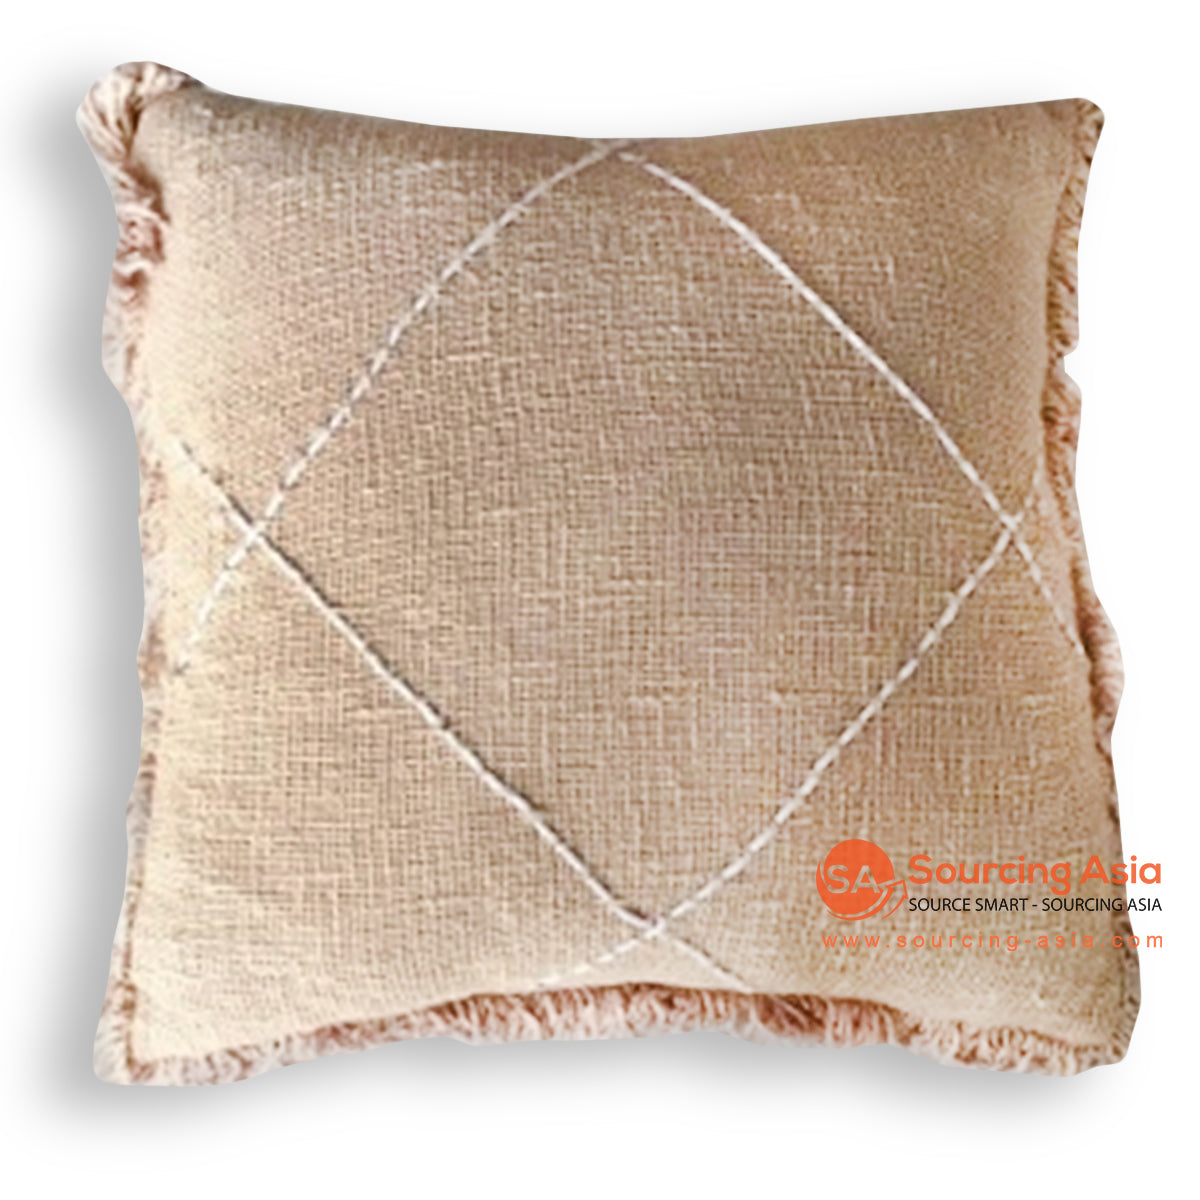 HIP025 HAND STITCHED COVER PILLOW WITH FRINGE 50 X 50 CM